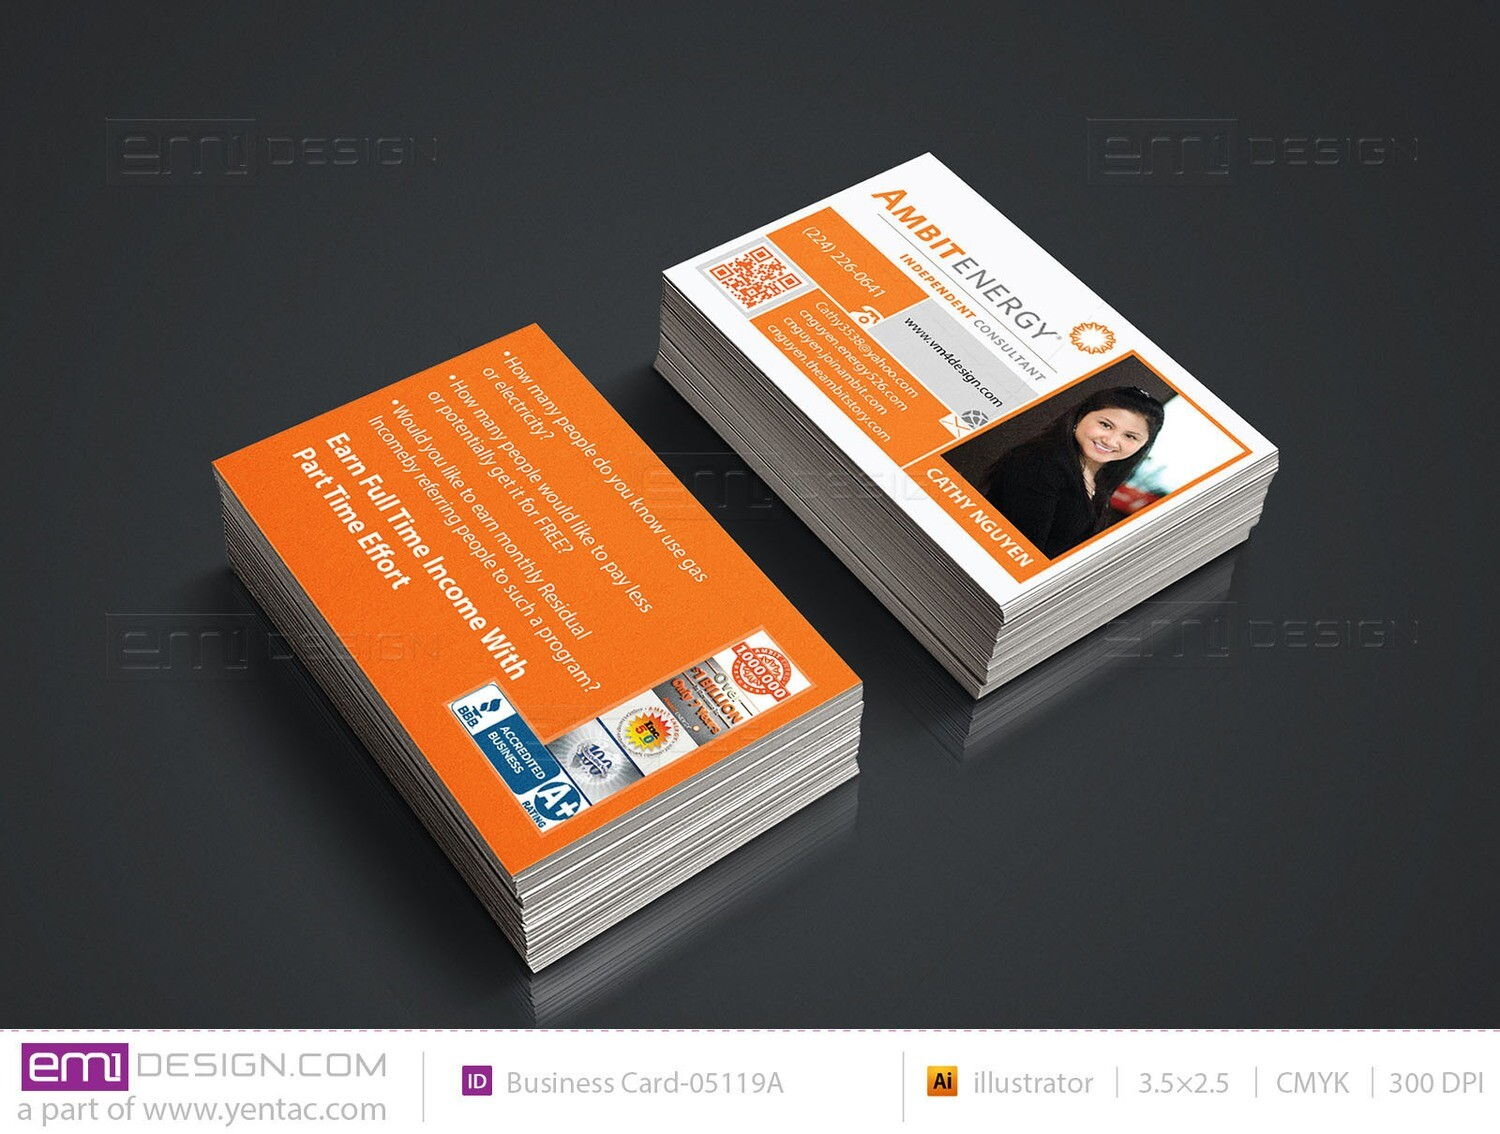 Business Card - Template BusCard-05119A